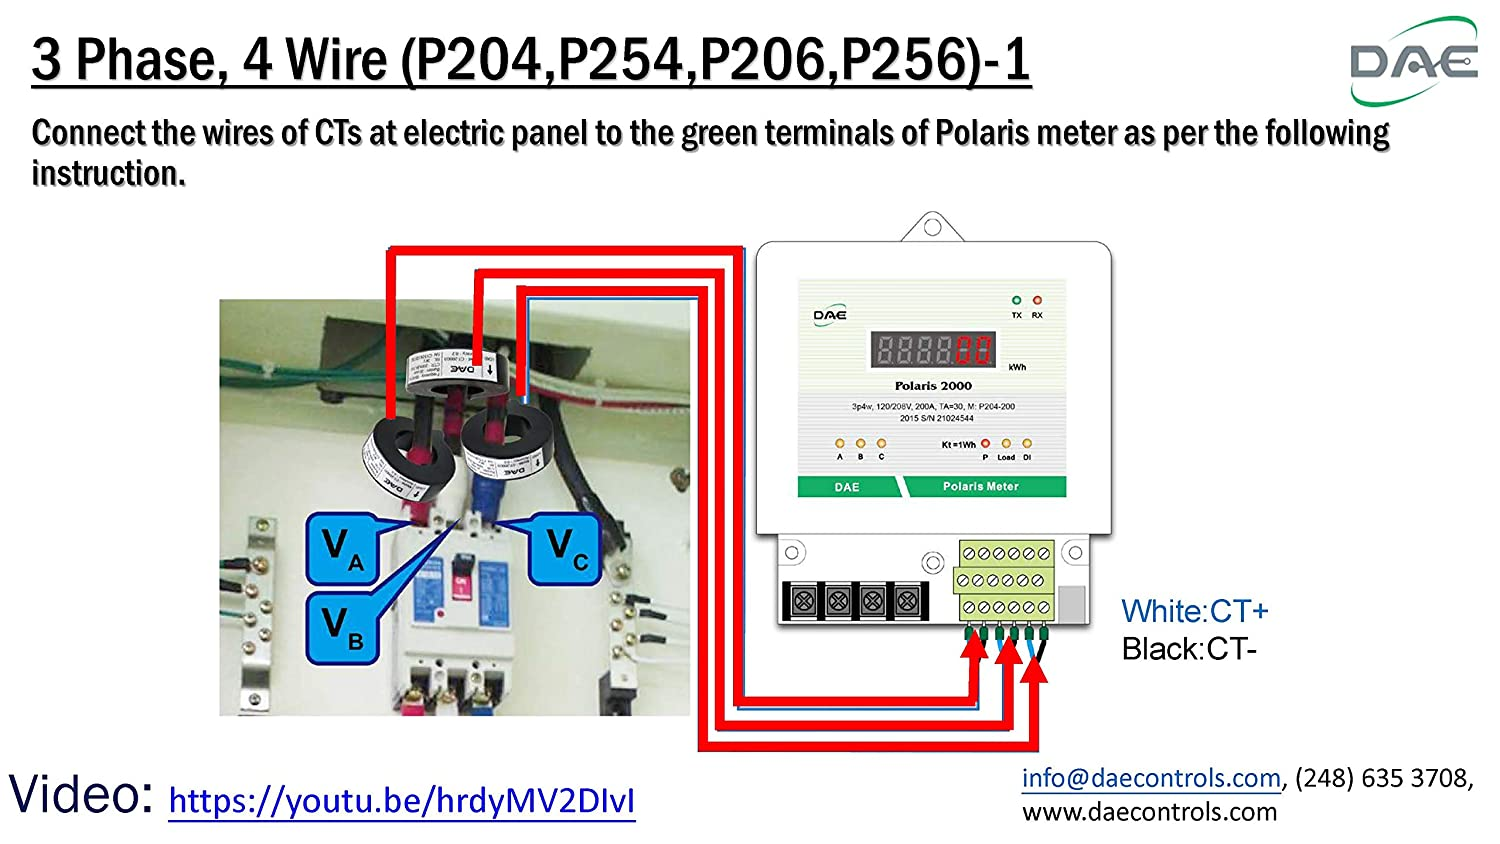 277//480v 200A inner dia. 1.02 3P4W 3 CTs UL kWh Smart Submeter 3 hot wire, 1 Neutral DAE P206-200-S KIT Polaris 2000